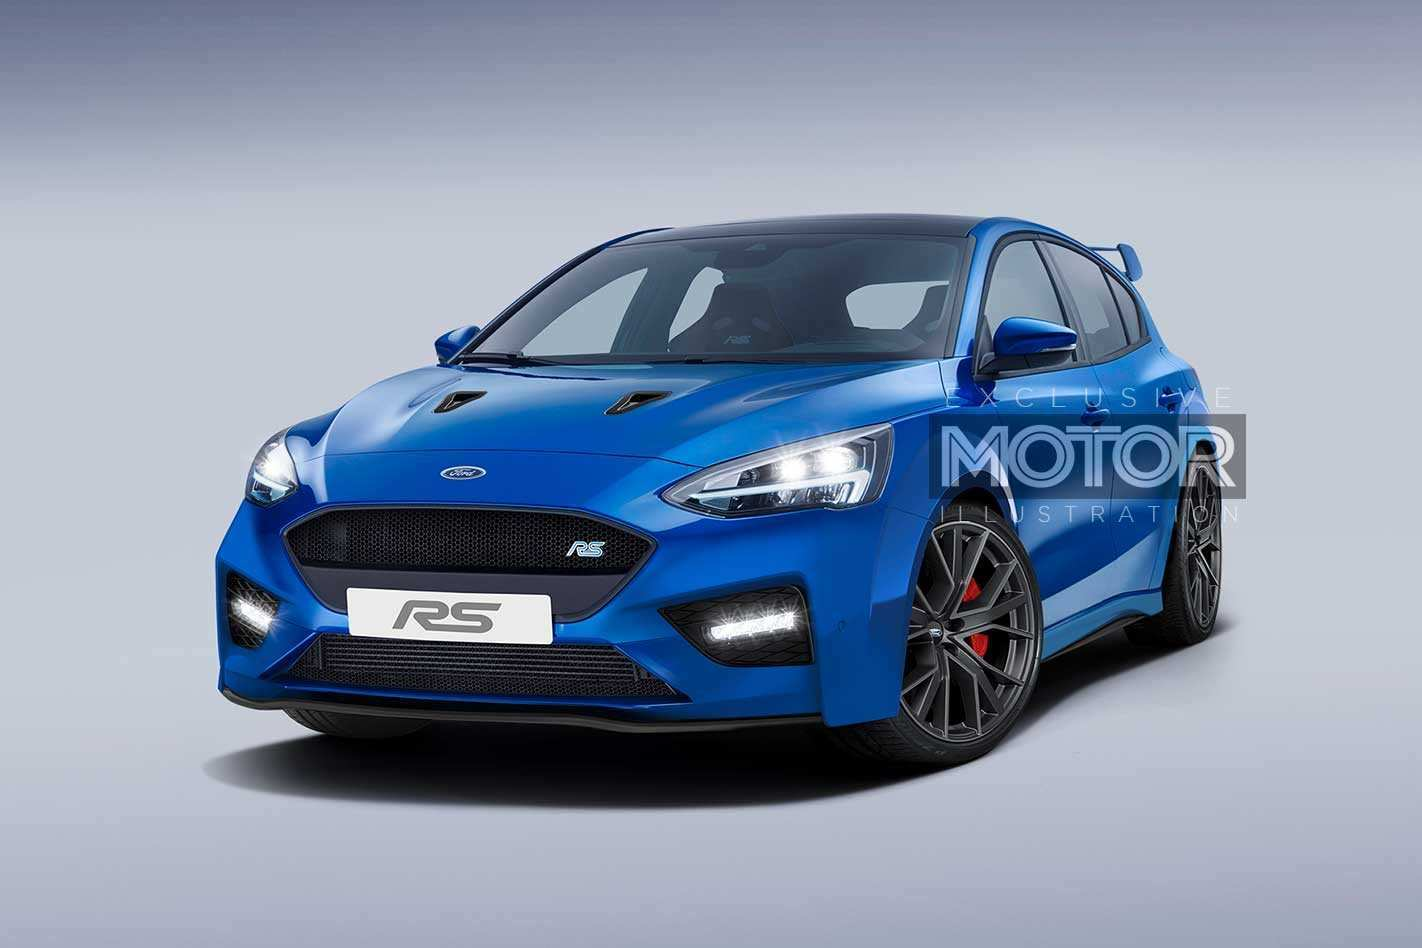 49 New 2020 Ford Fiesta St Rs Release Date